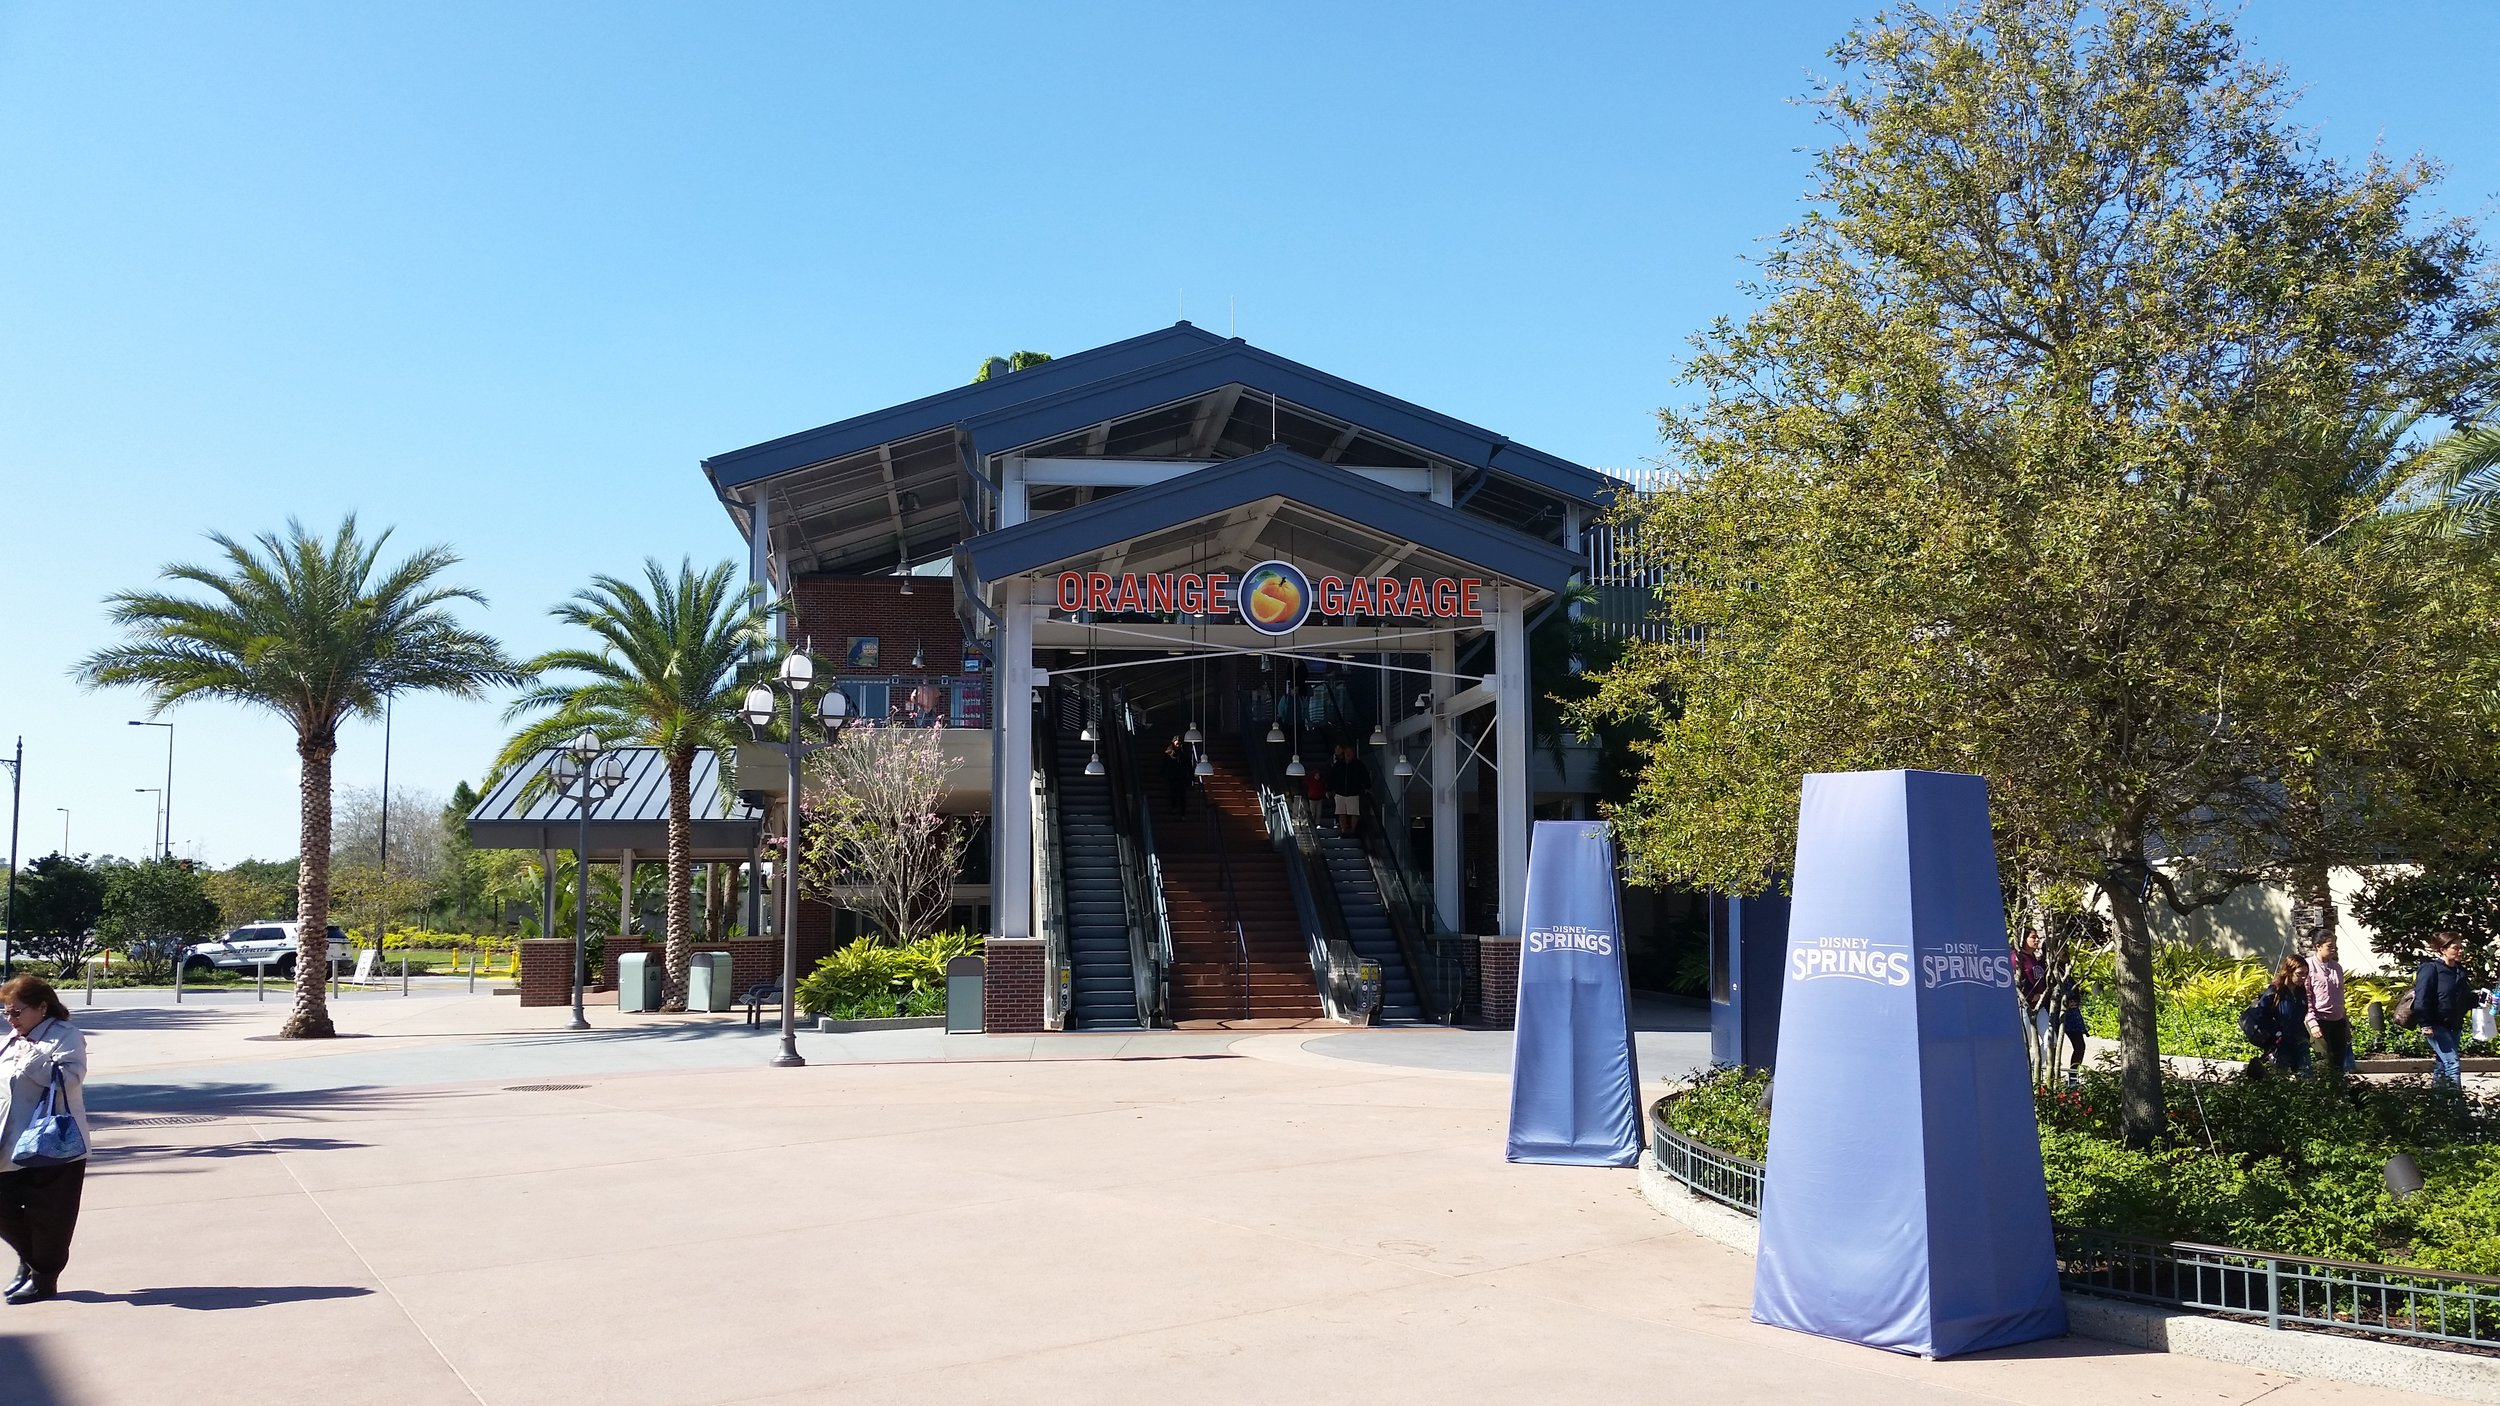 Entrance to Orange Garage, Disney Springs